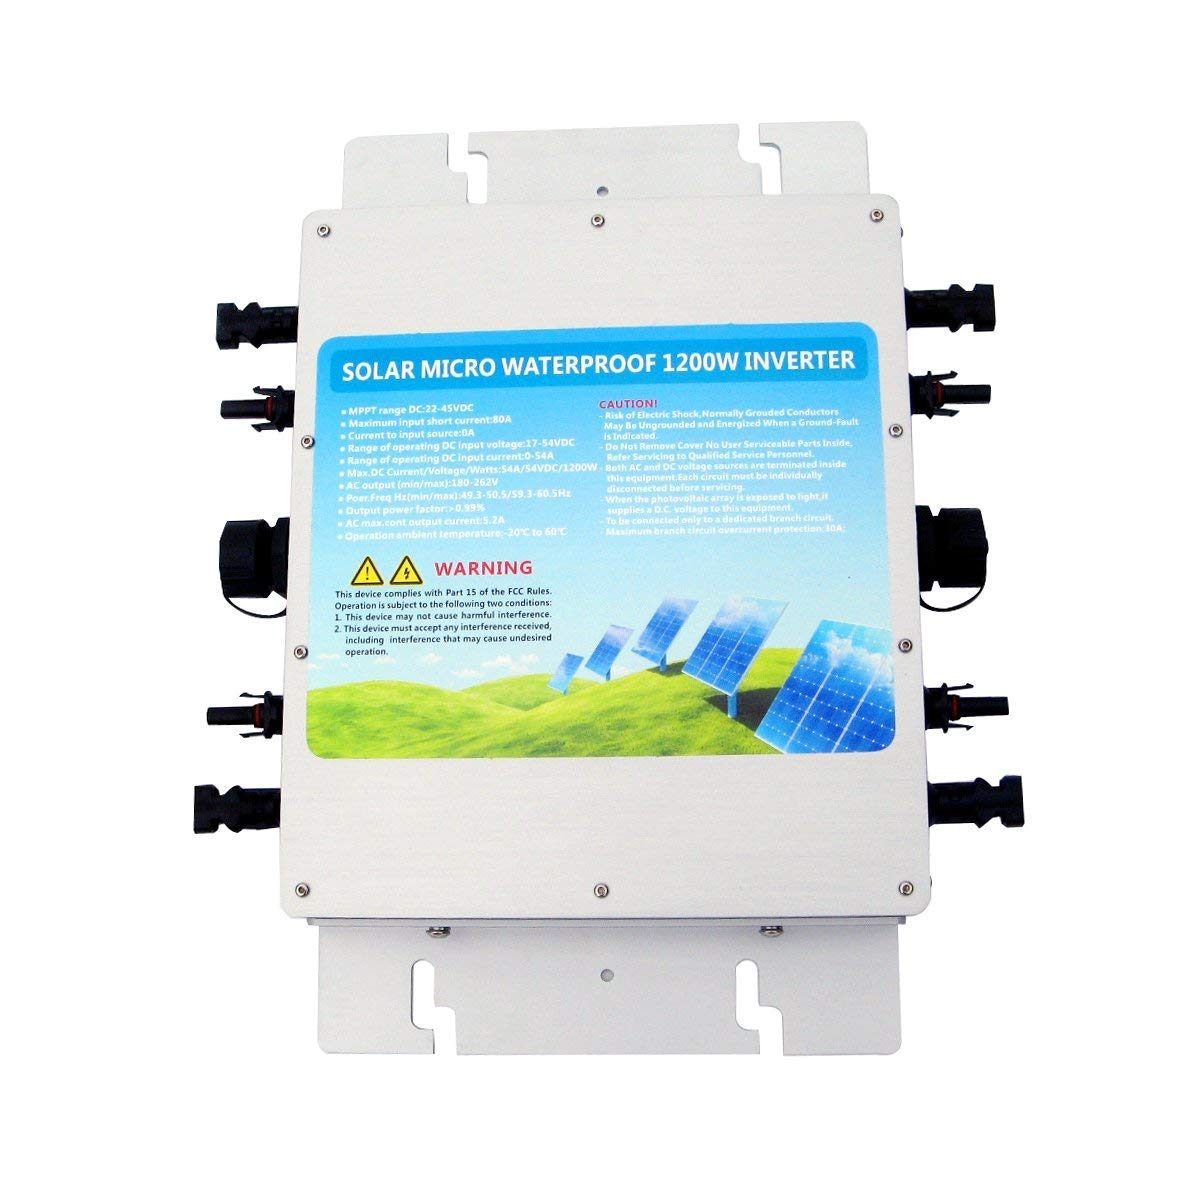 ECOWORTHY 1200W 24V-230V Waterproof On Grid Tie Power Inverter with MPPT Function for Home Solar Panel System